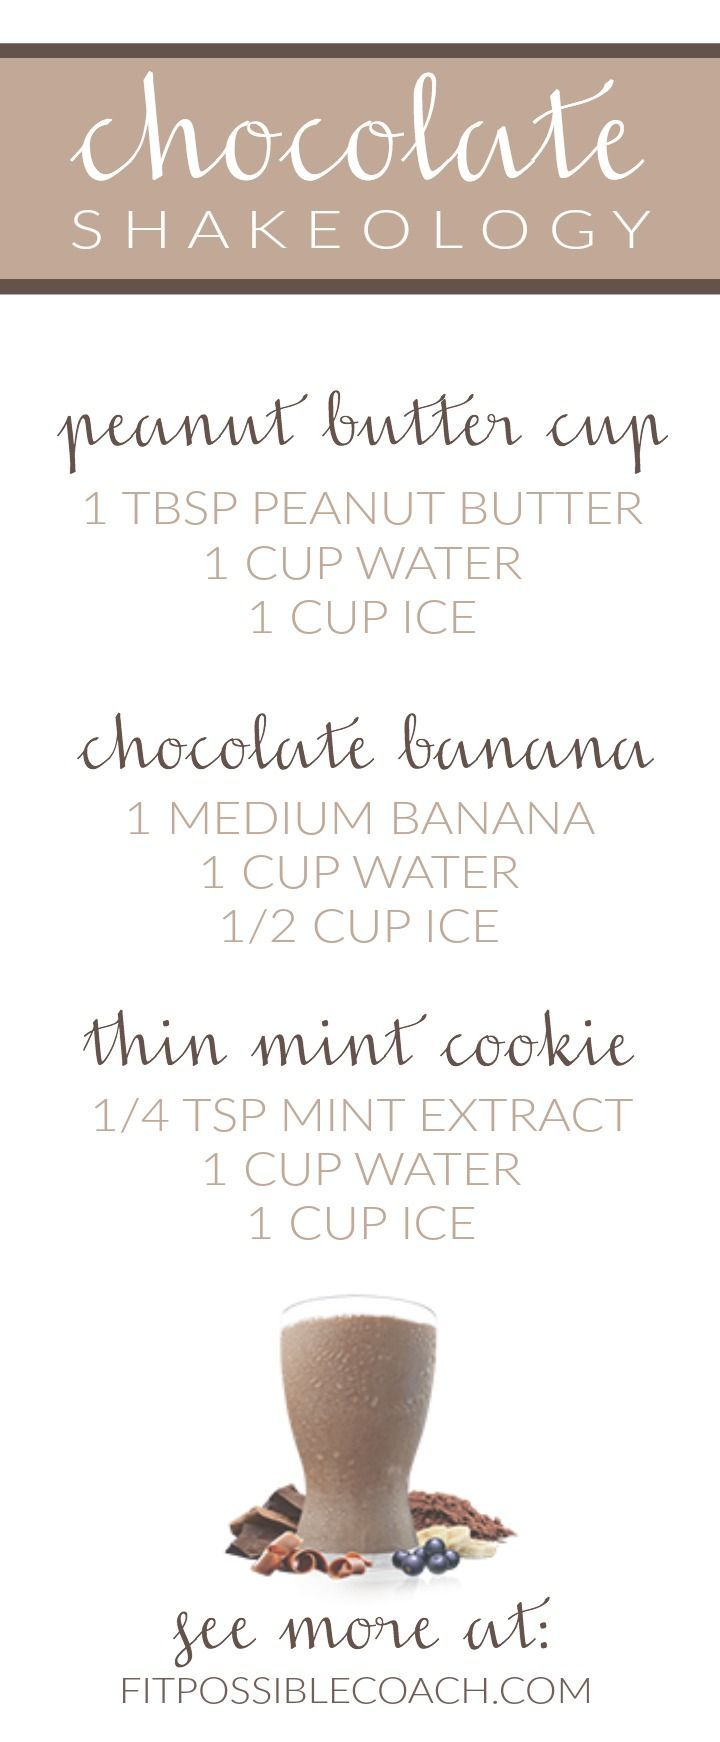 Chocolate Shakeology Recipes -- See more at http://fitpossiblecoach.com